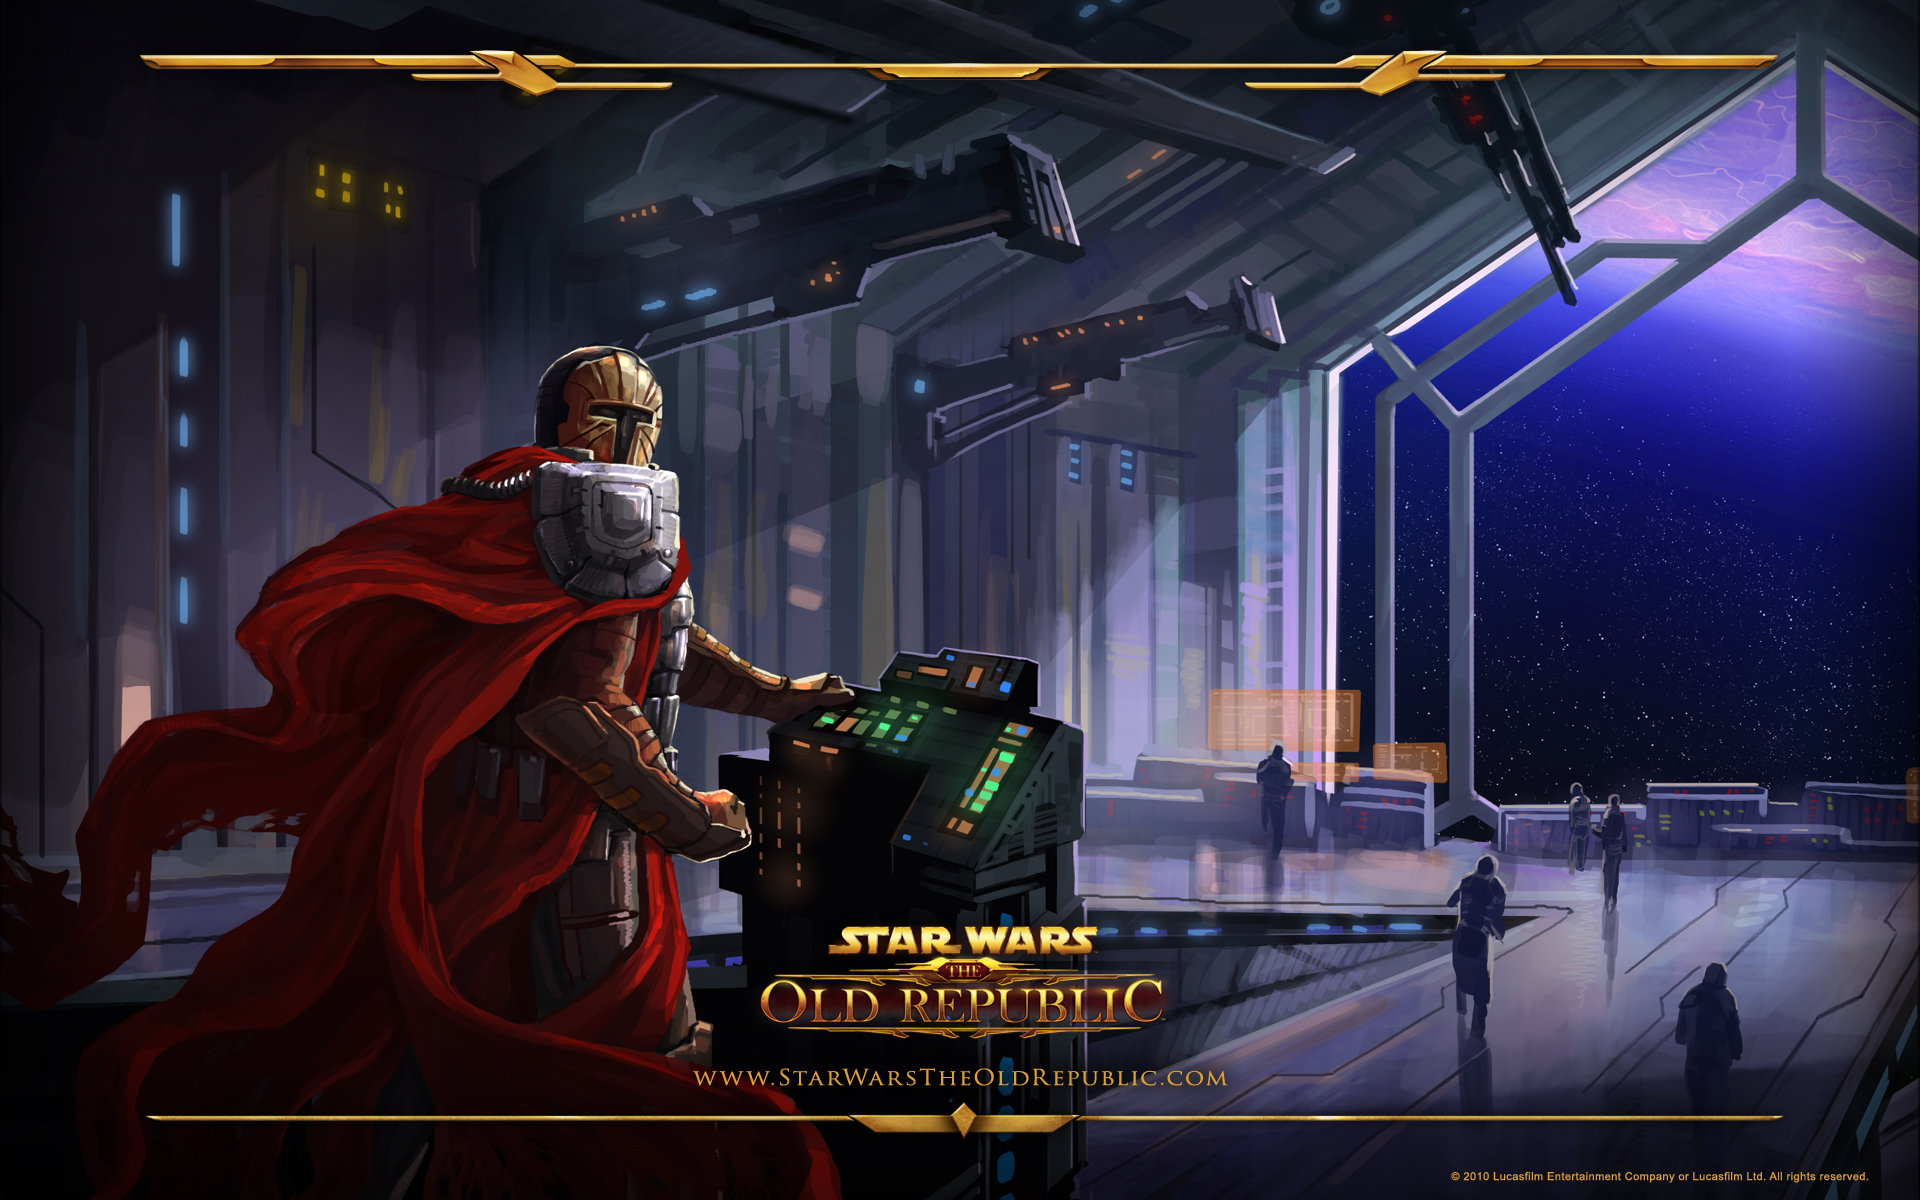 Star Wars The Old Republic Full HD Wallpaper And Background Image